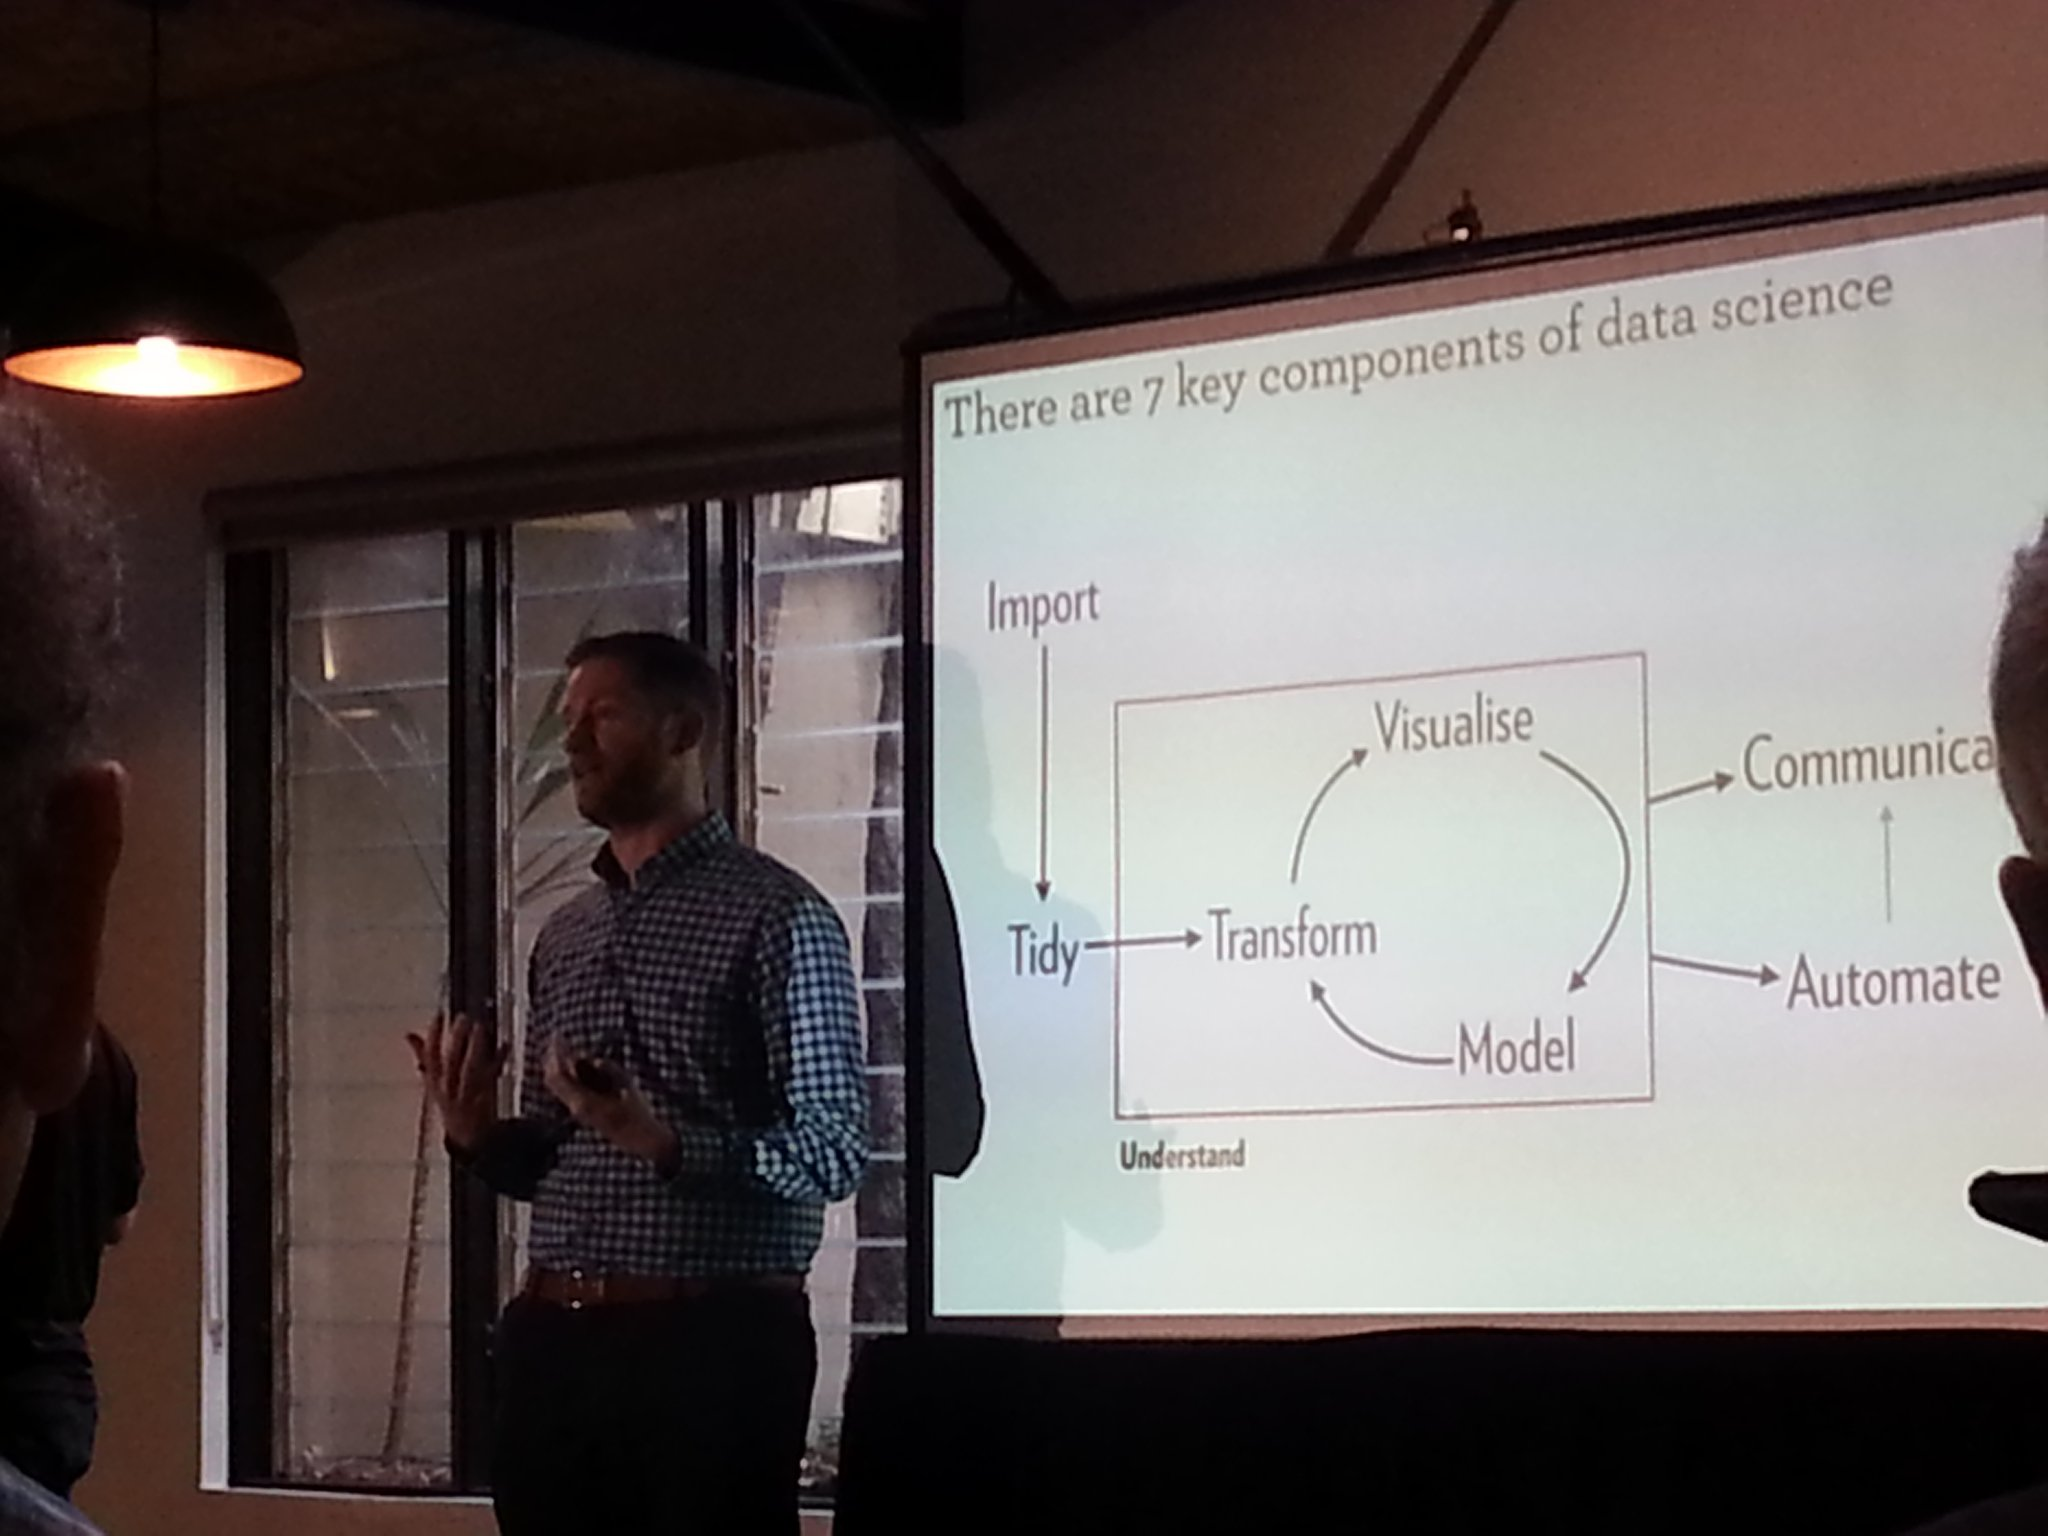 Excited to see keynote speaker @hadleywickham at #wombat2016 data science workshop. https://t.co/kJTP8RBzh2